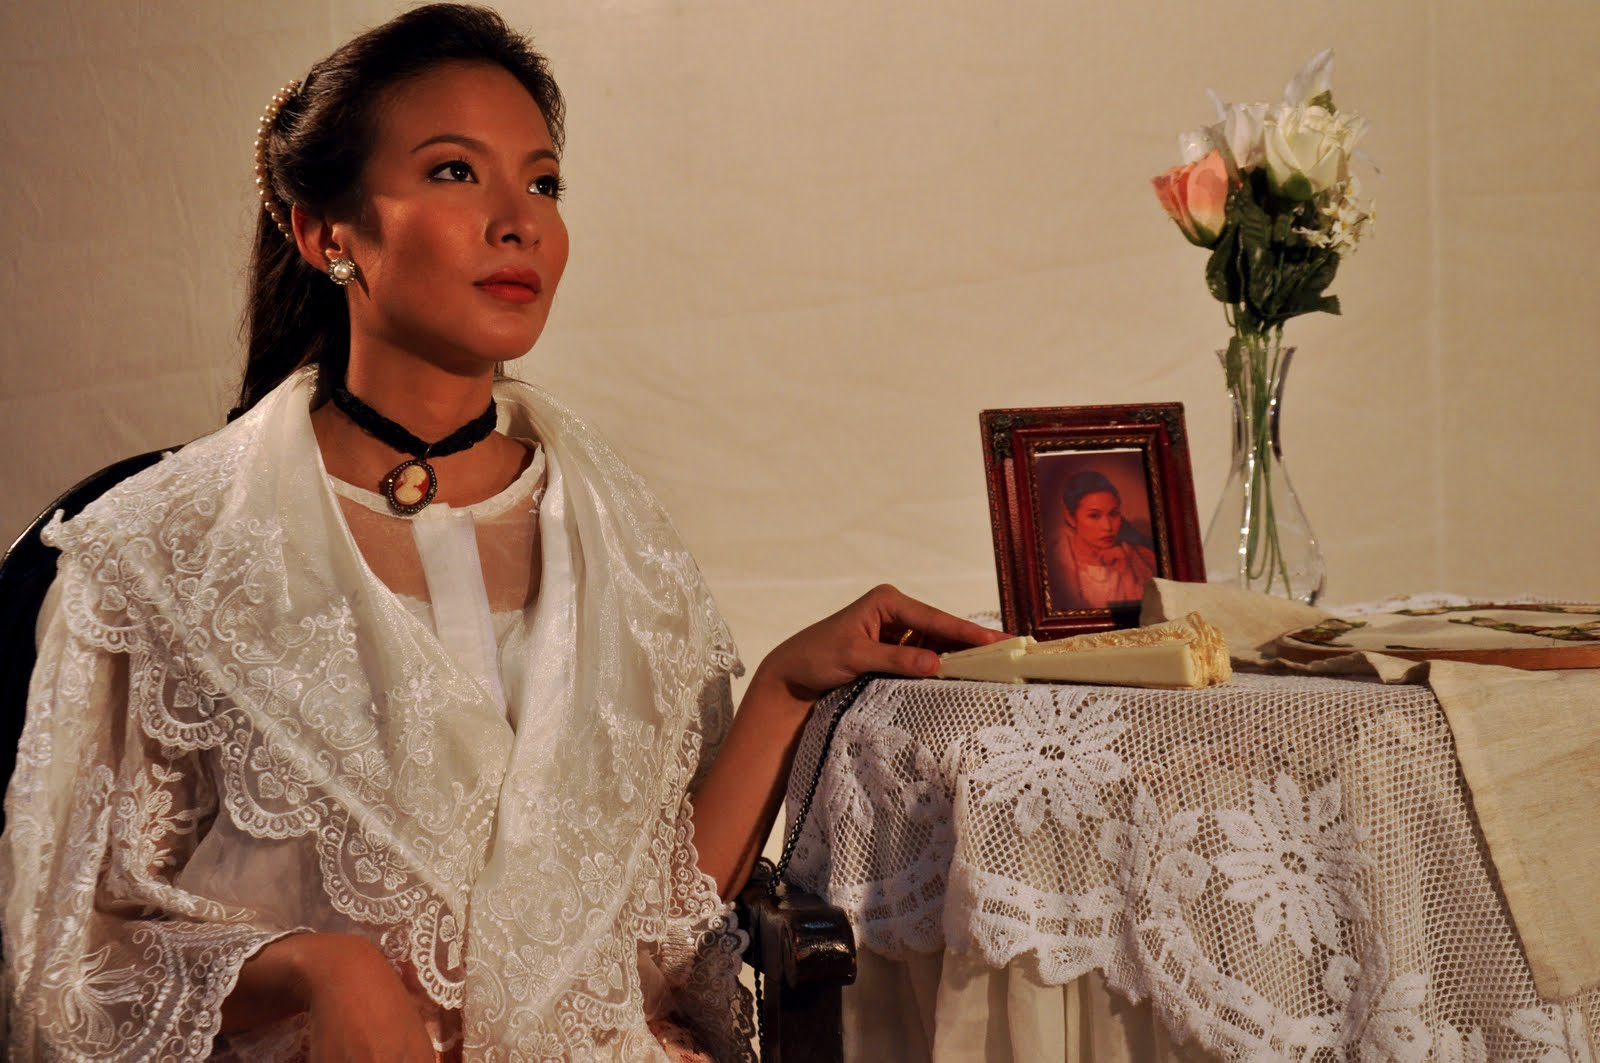 Cris+Pastor+as+Maria+Clara - Elegance of the Filipina in Maria Clara Dress - Philippine Photo Gallery